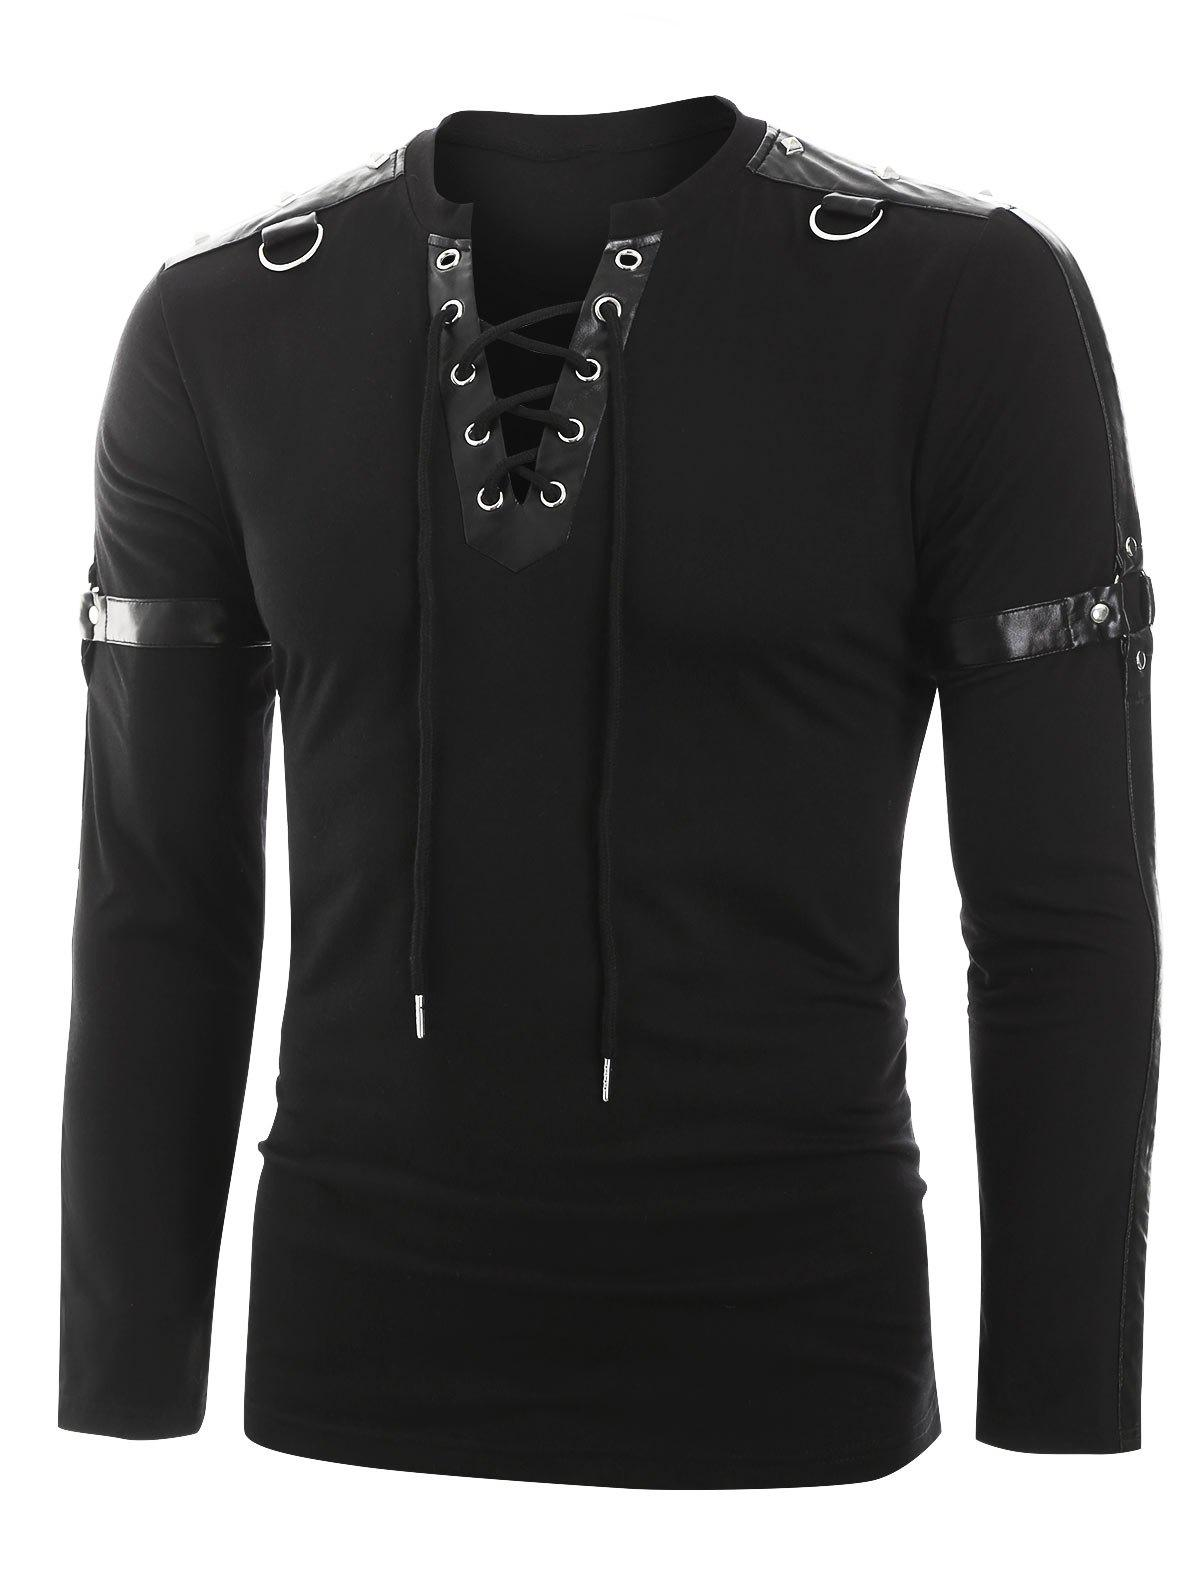 Shop Faux Leather Harness Insert Long Sleeve Lace-up T-shirt